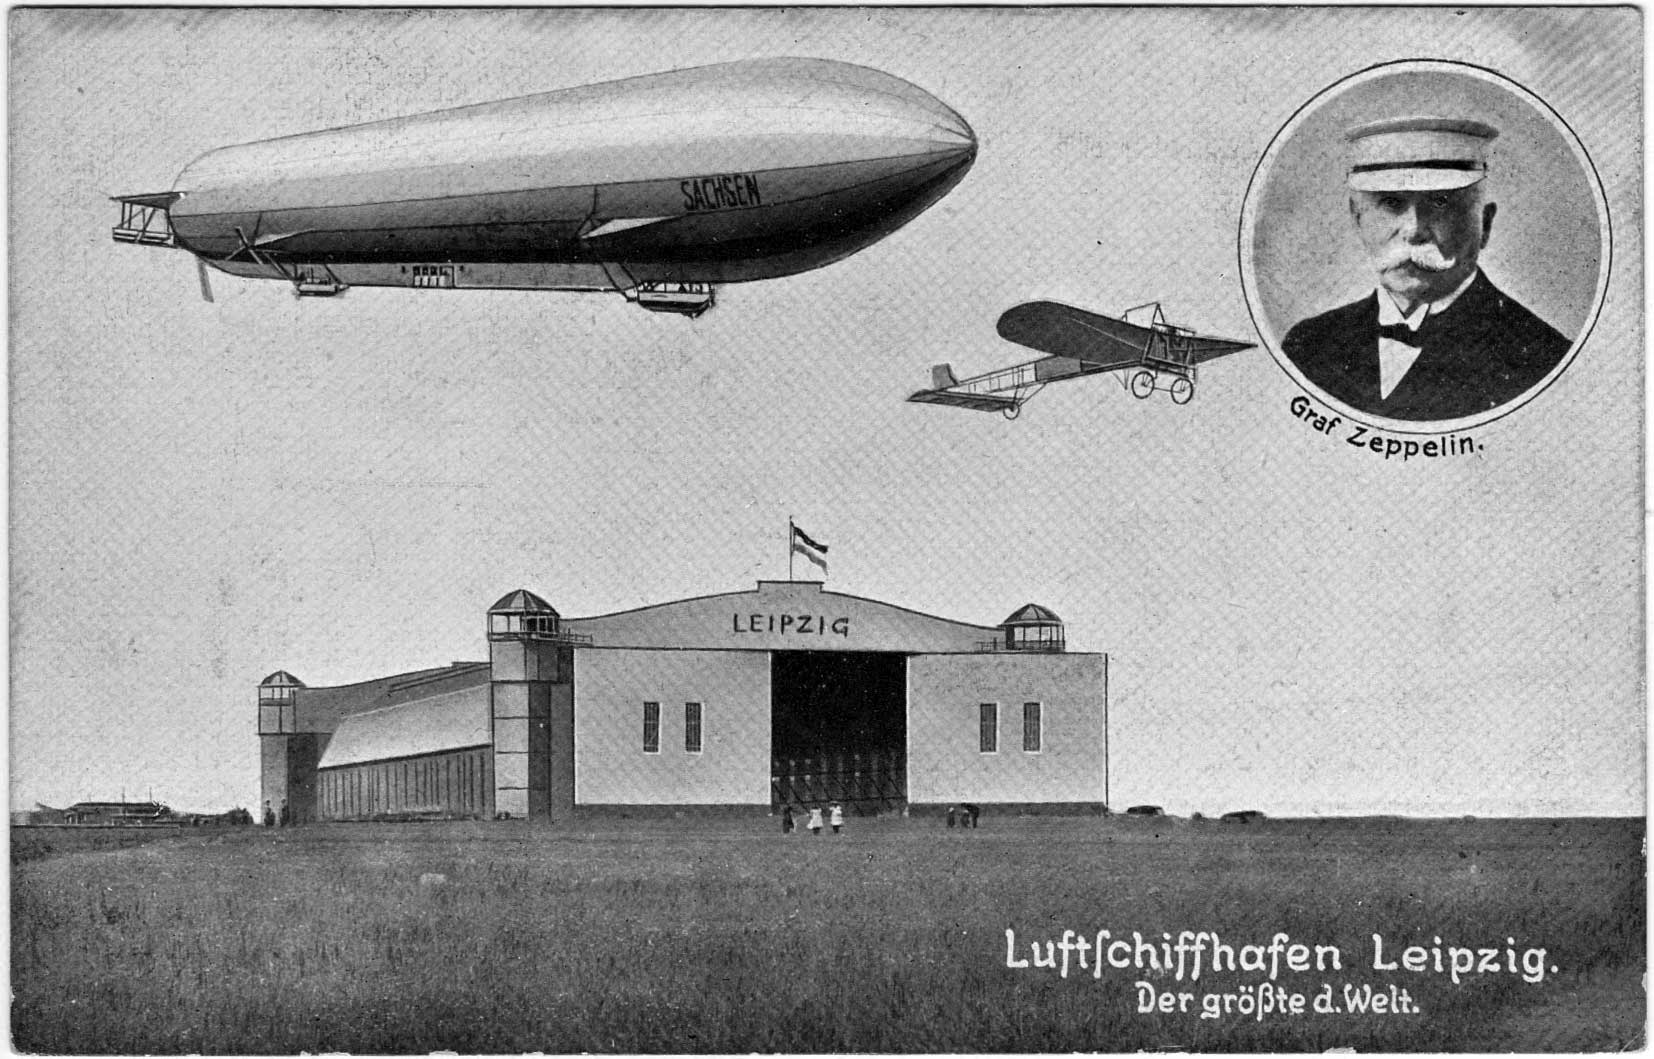 DELAG The Worlds First Airline  Airshipsnet